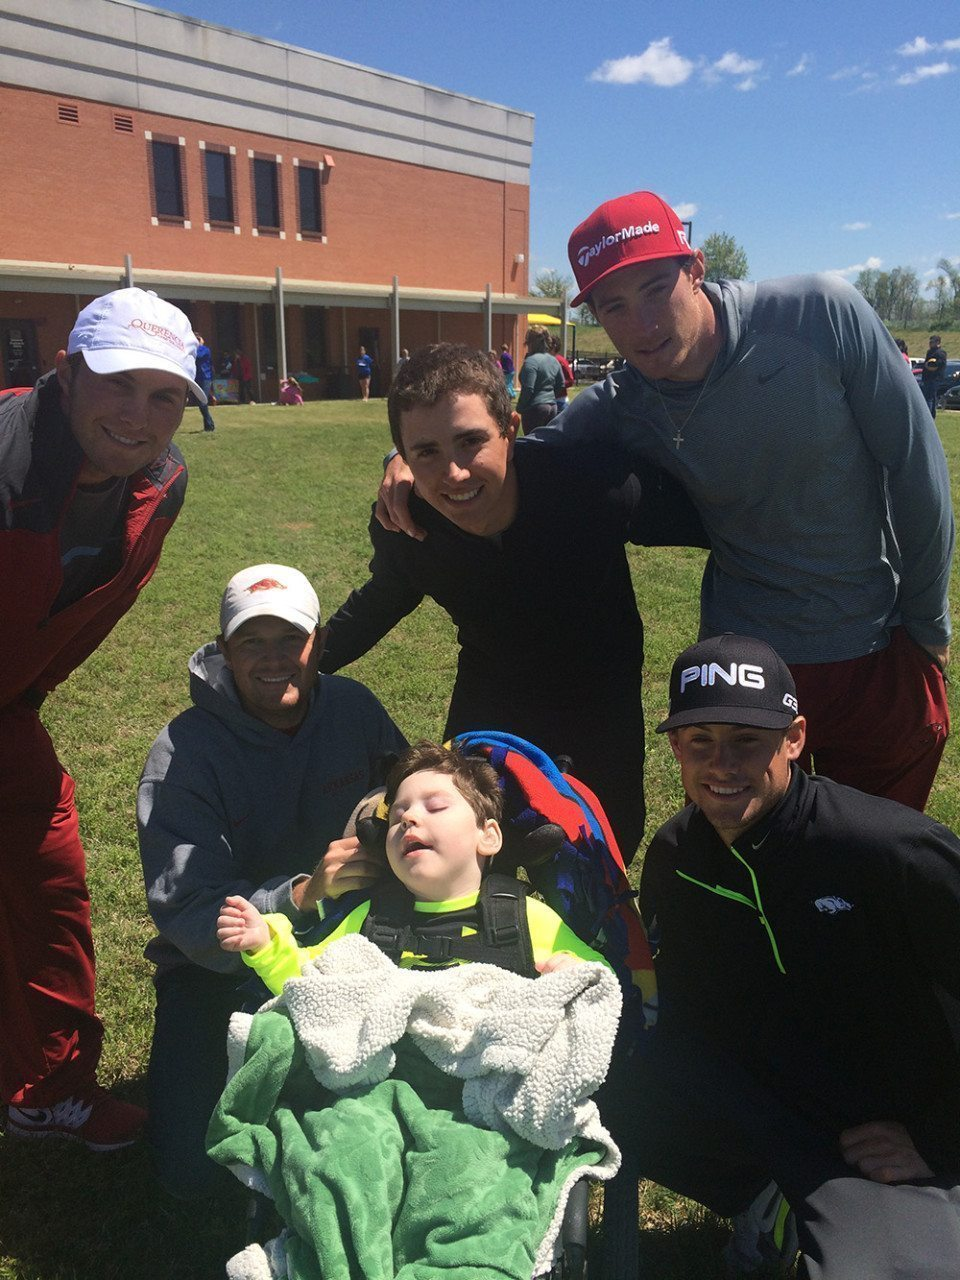 KidsFirst (Lowell, Ark.) Special Olympics with Arkansas men's golf team volunteers. From left- Zach Coats, Barrett Lais, Hudson Lais, Nicolas Echavarria, Kolton Crawford and Taylor Moore